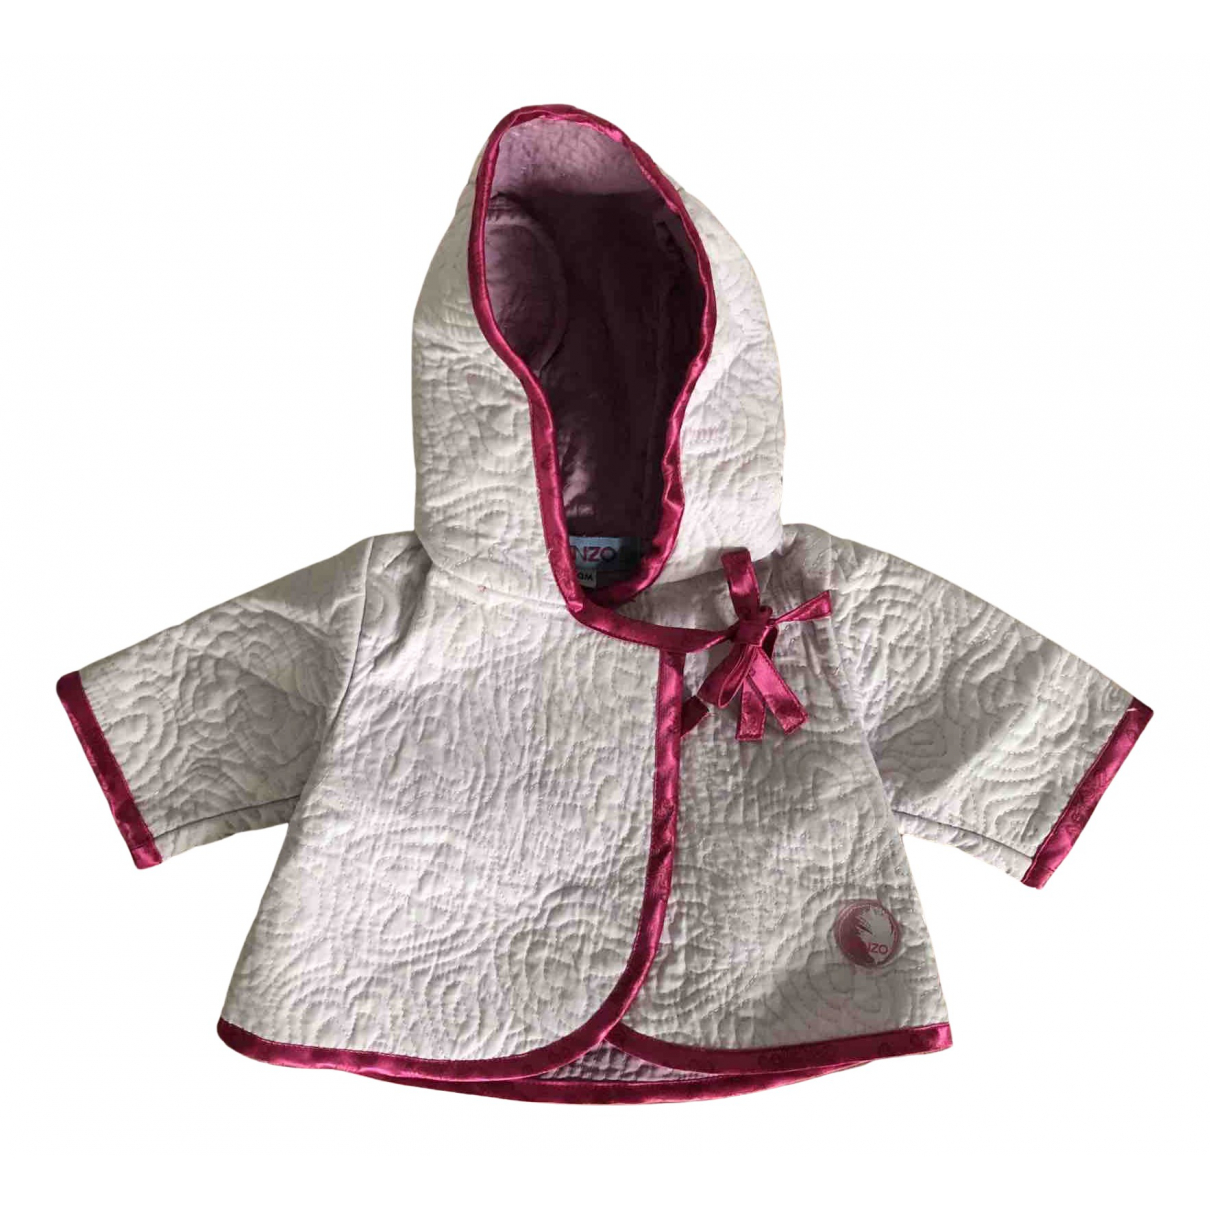 Kenzo N Pink Cotton jacket & coat for Kids 1 months - up to 55cm FR